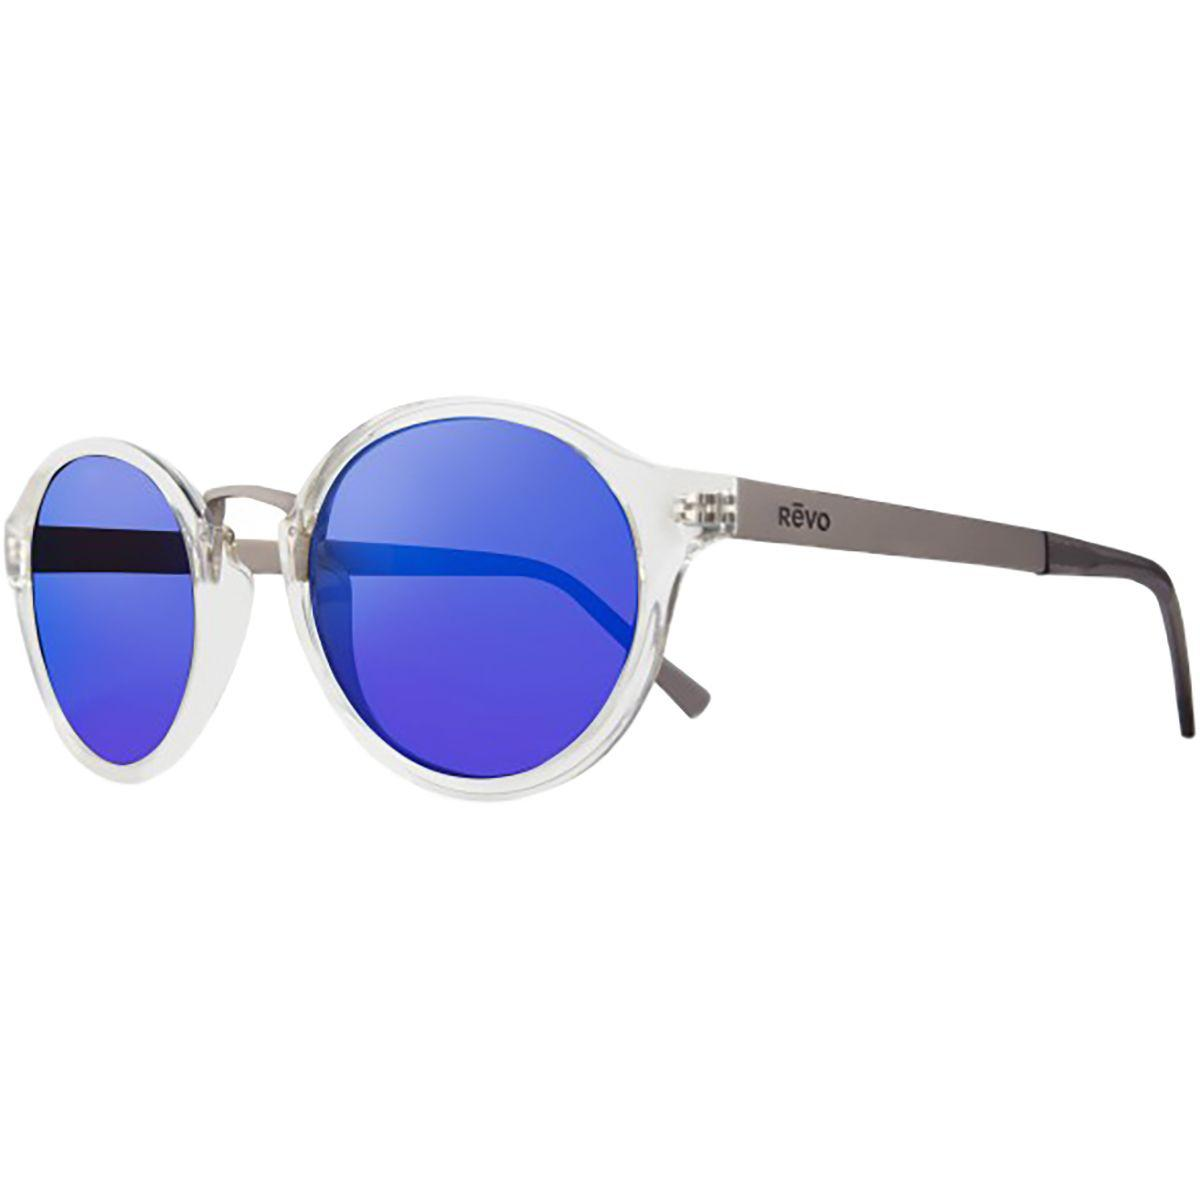 912332449a5 Lyst - Revo Dalton Polarized Sunglasses in Blue for Men